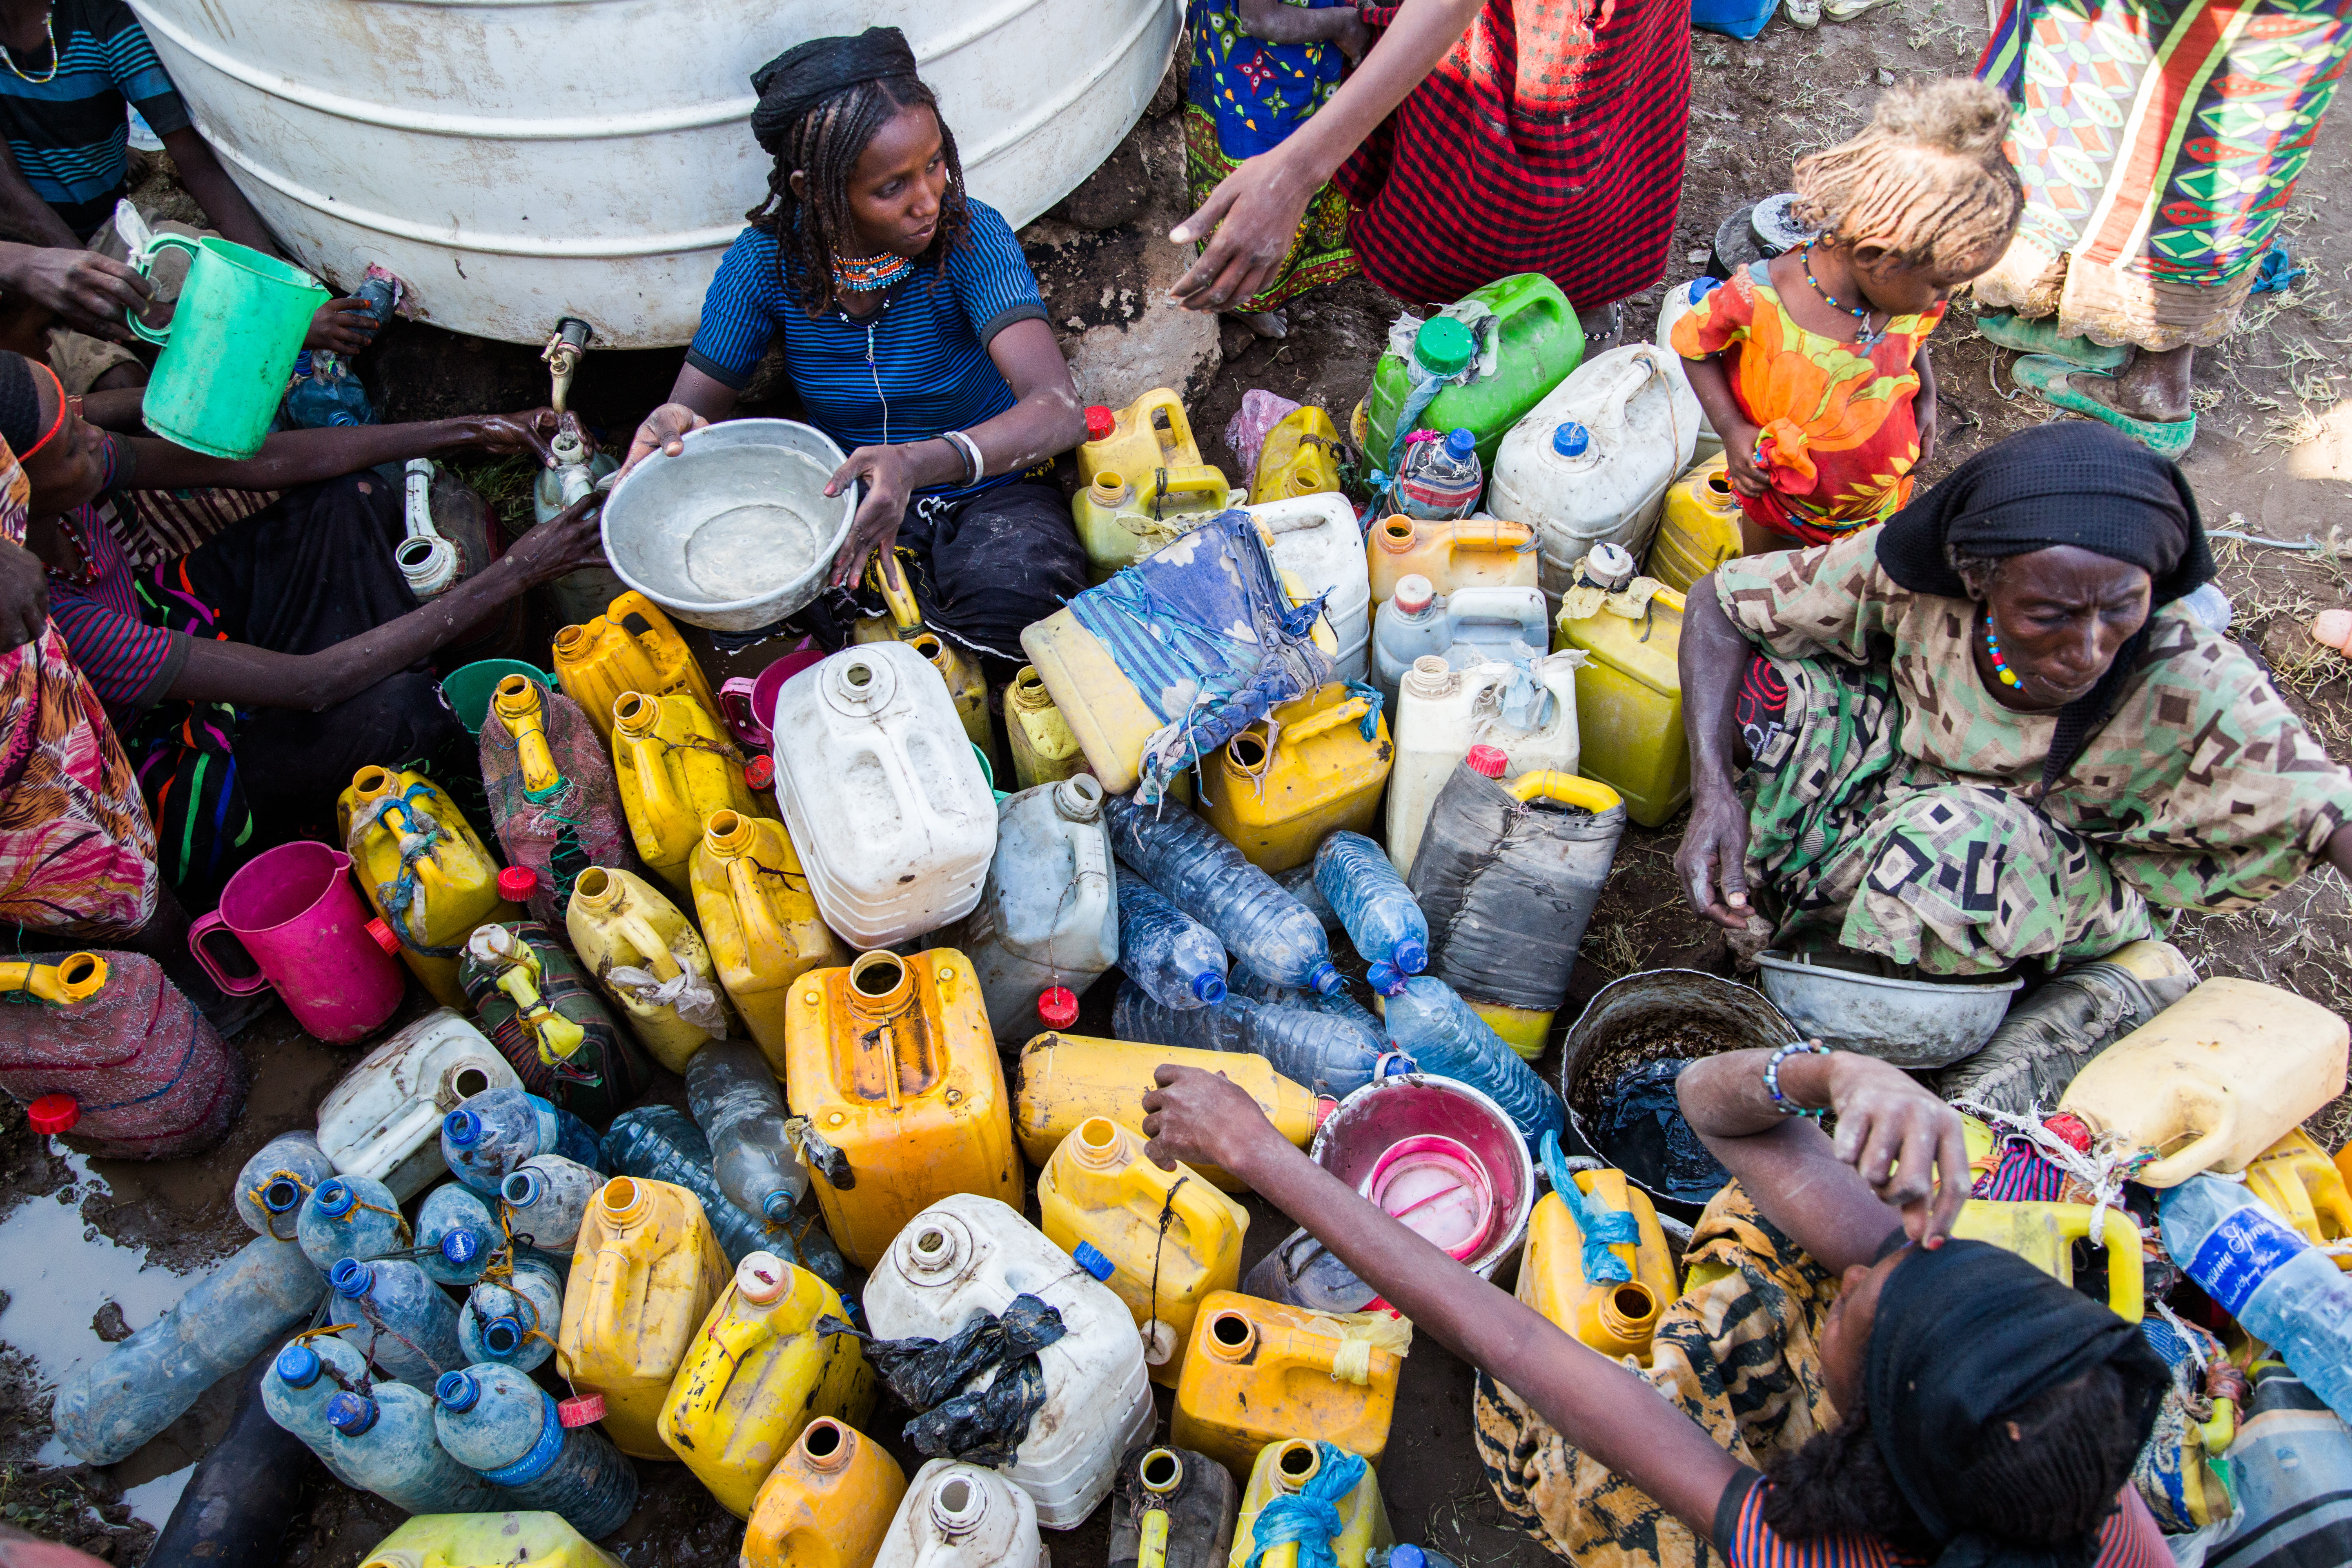 Huseyna Faraha, 20 years old, helping others in pouring water in their containers. Credit: UNICEF Ethiopia